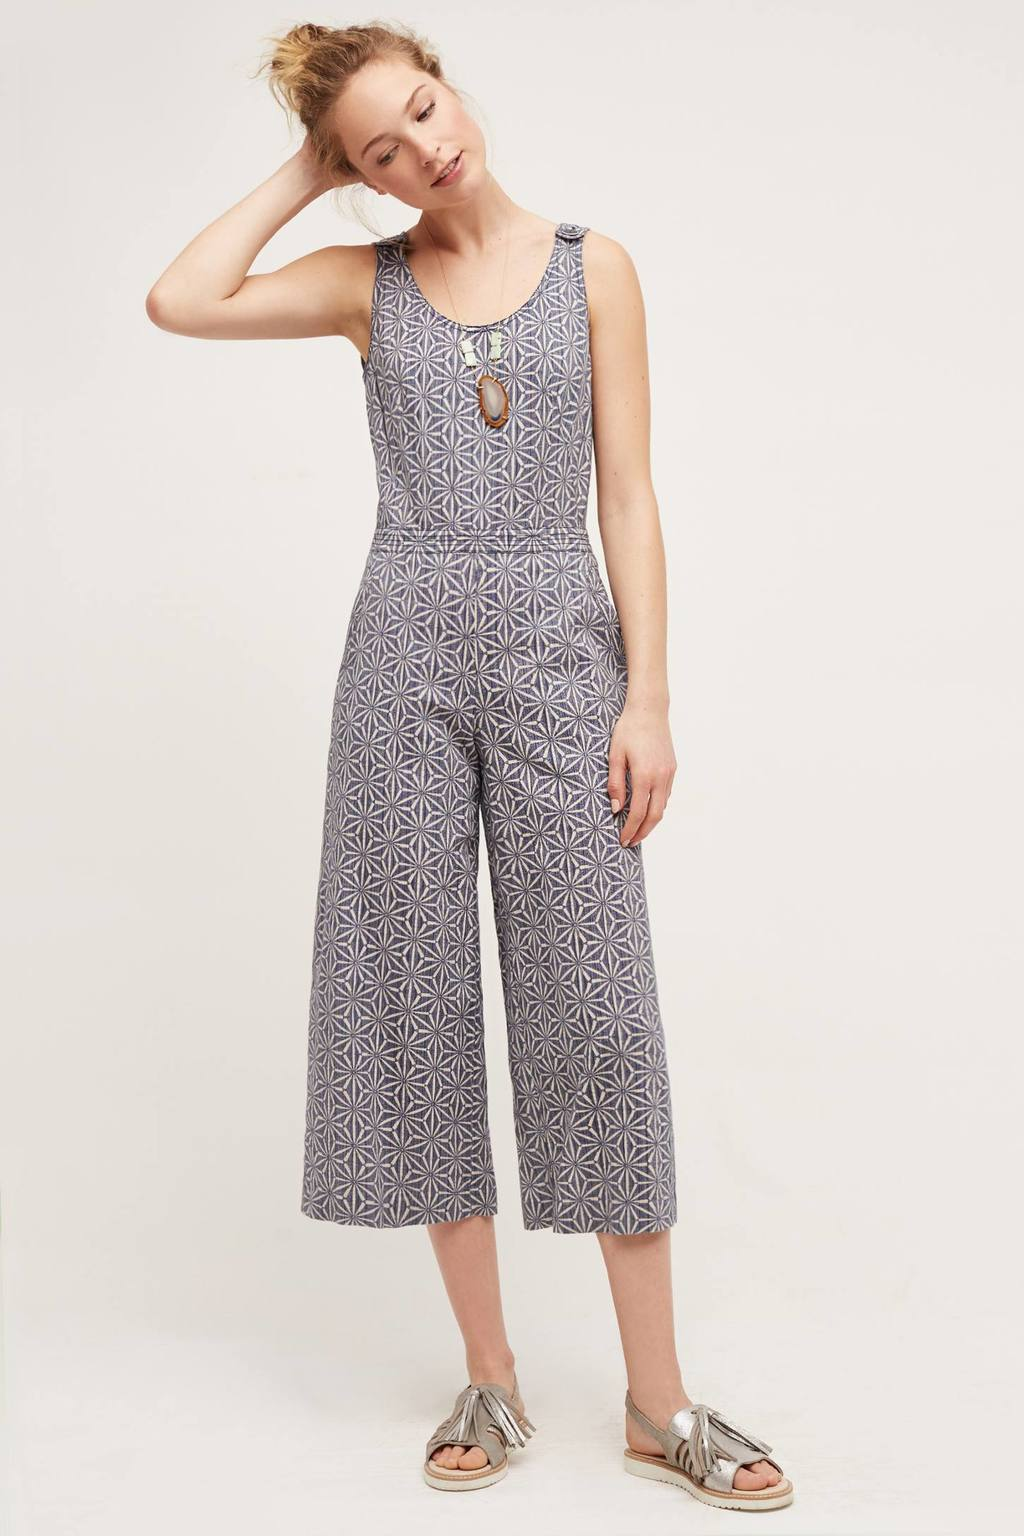 Windward Jumpsuit - neckline: round neck; sleeve style: sleeveless; predominant colour: denim; occasions: casual; length: calf length; fit: body skimming; fibres: cotton - mix; sleeve length: sleeveless; style: jumpsuit; pattern type: fabric; pattern: patterned/print; texture group: other - light to midweight; season: s/s 2016; wardrobe: highlight